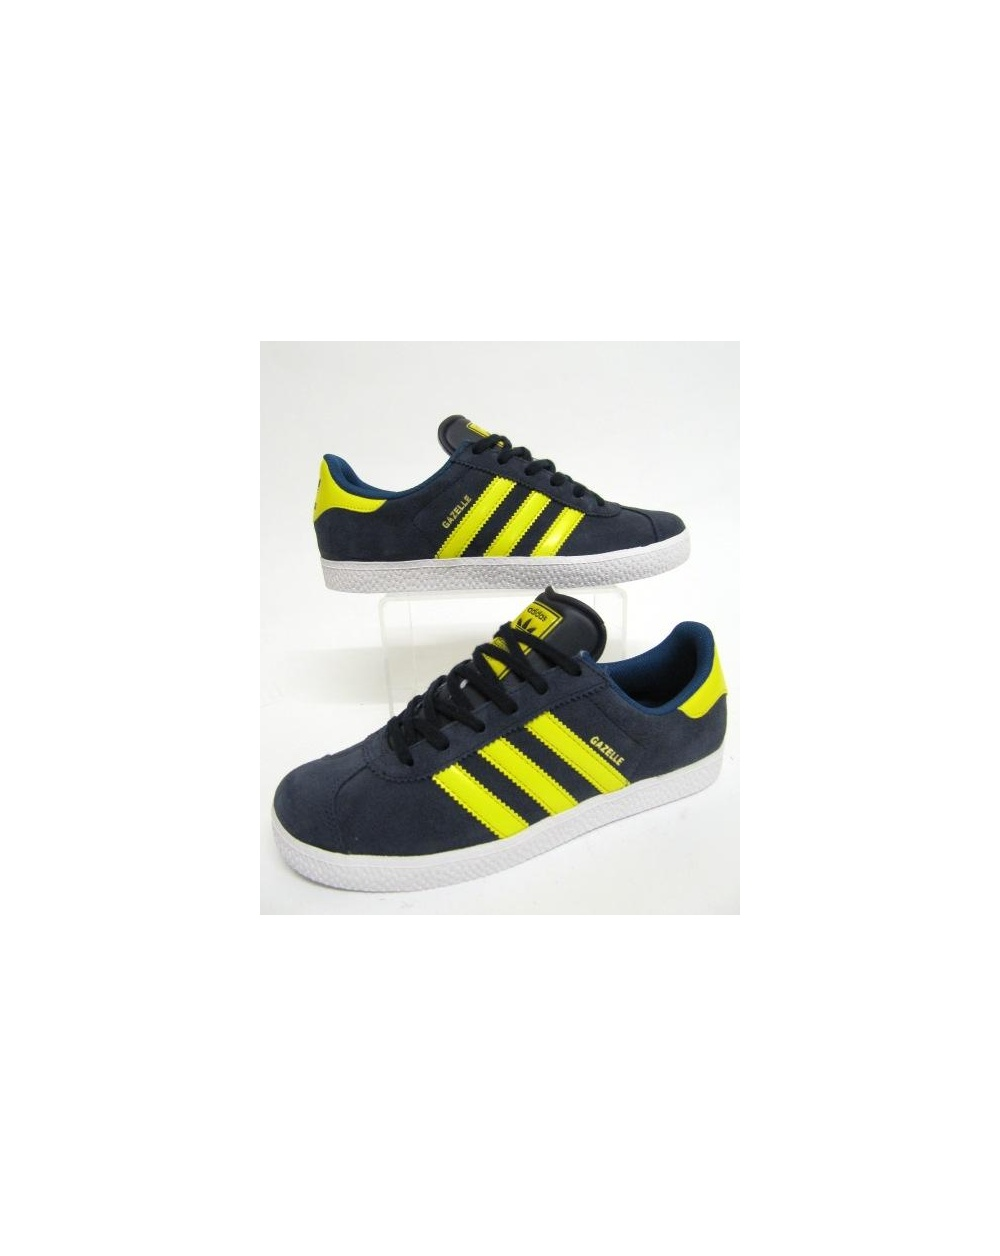 Adidas Gazelle 2 Junior Trainers